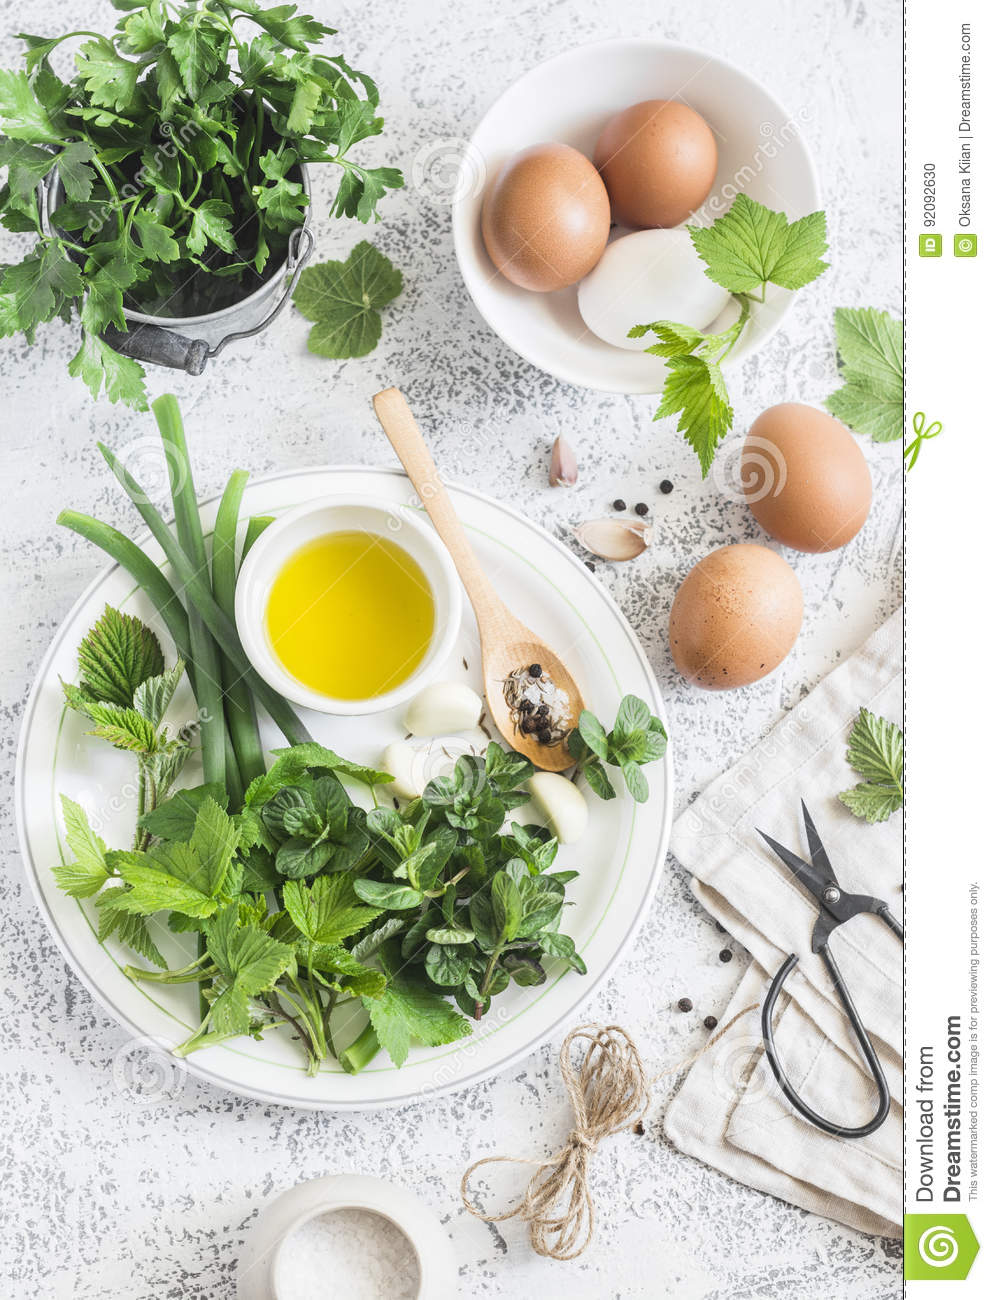 Garden herbs, spices and eggs on a light table. Rustic kitchen still life. Ingredients for cooking. Top view